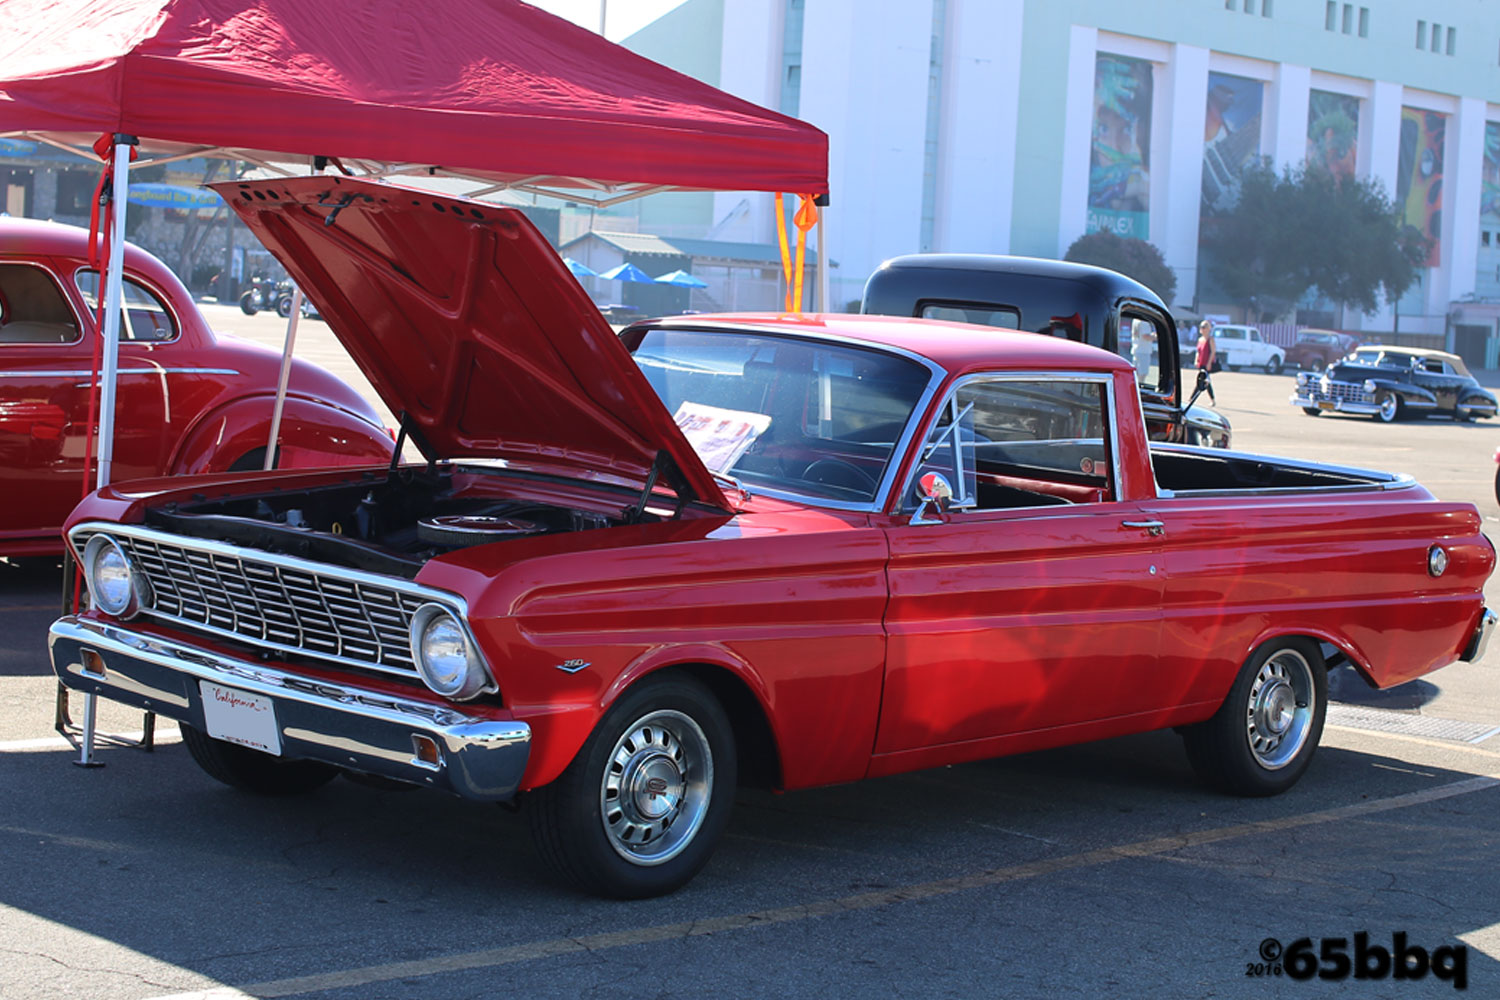 little red ranchero los angeles roadster show 65bbq